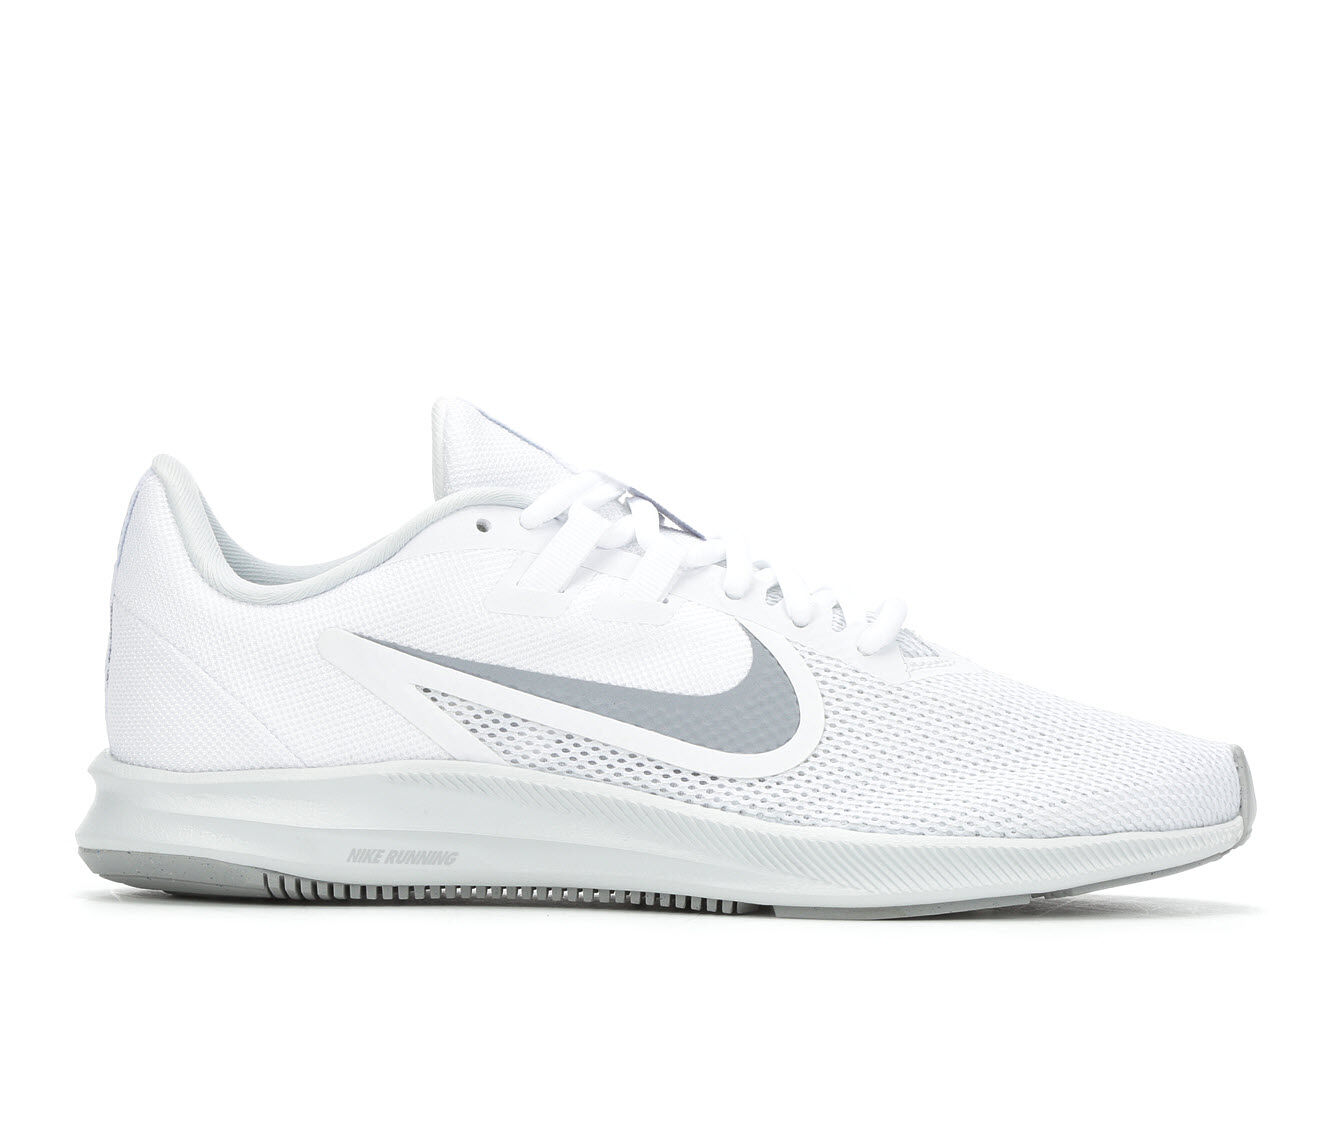 Women's Nike Downshifter 9 Running Shoes White/Grey